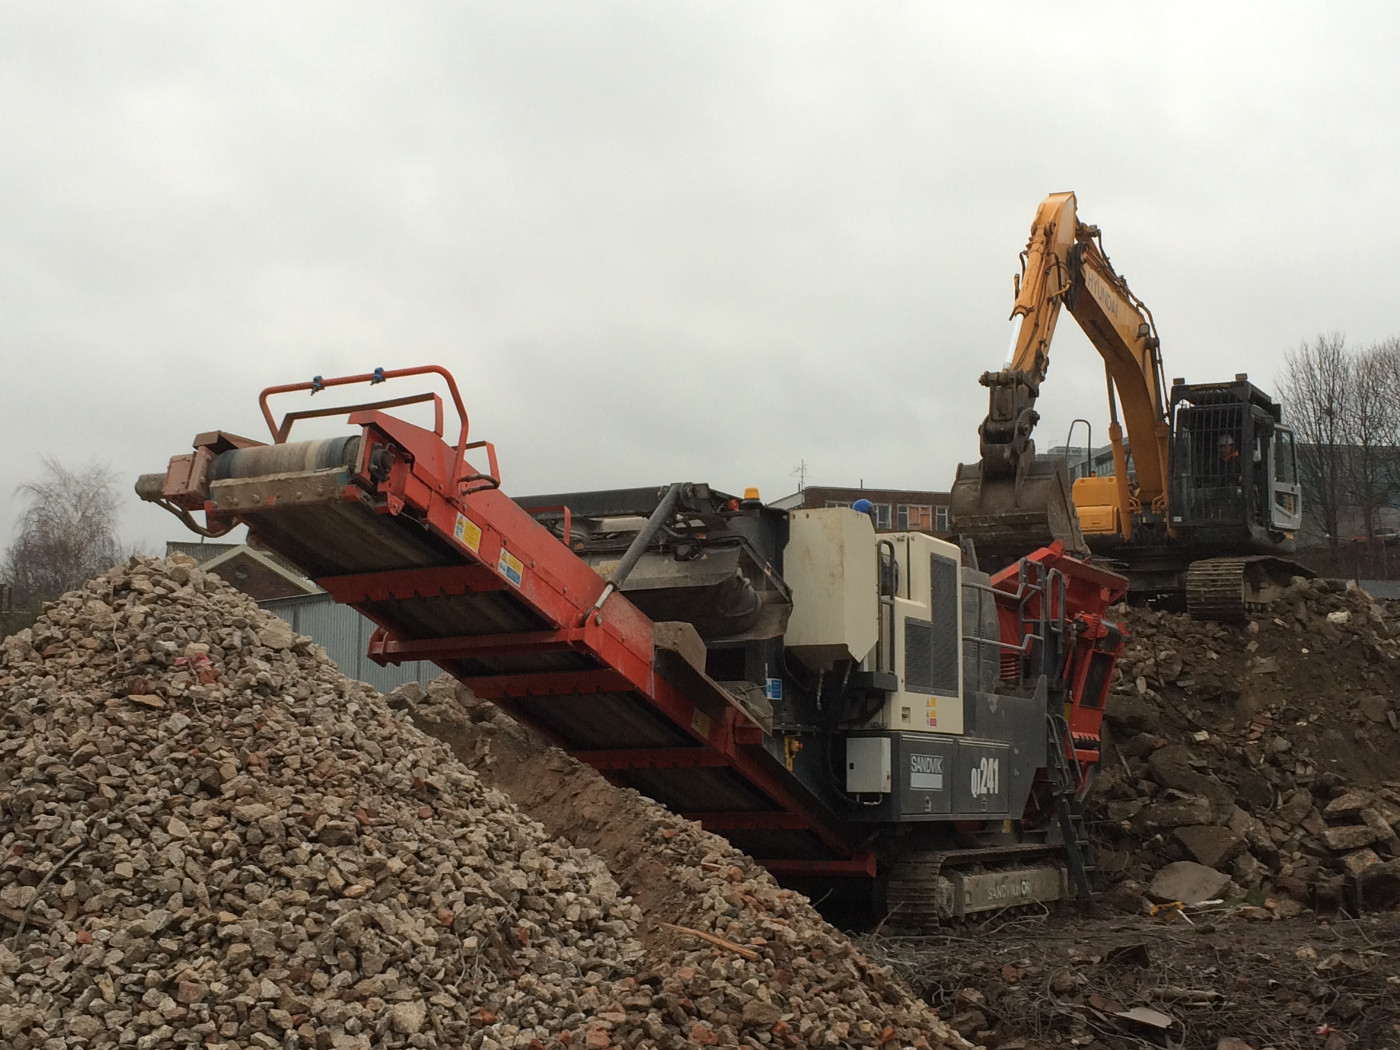 Demolition Recycling Manchester